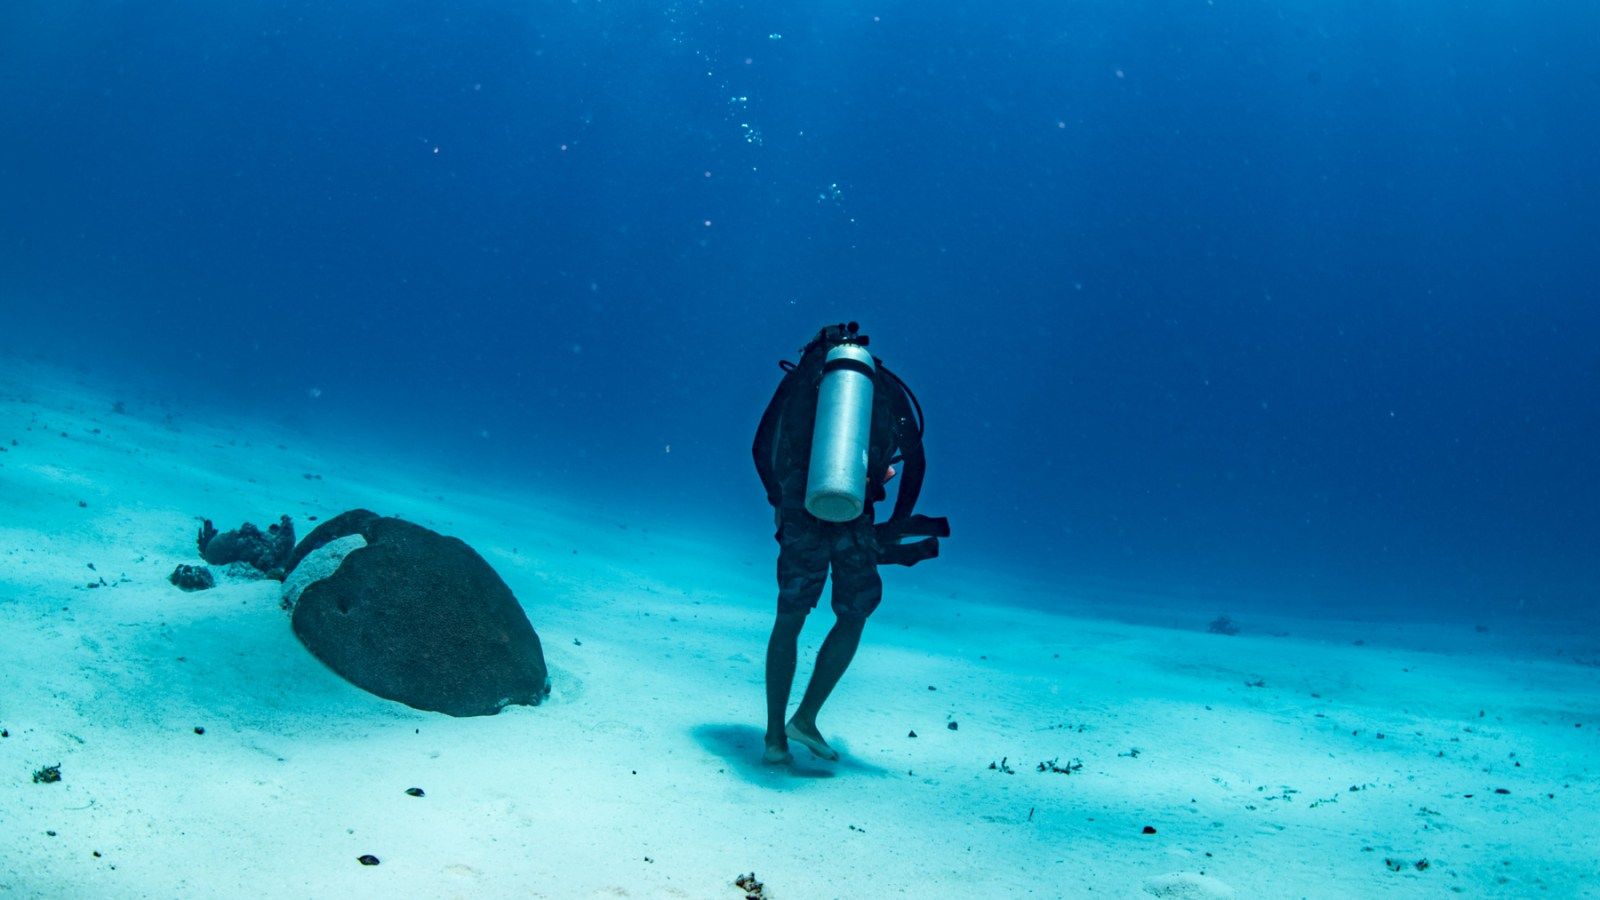 a image by sabbalot photography of a scuba diver walking on the sea floor in palau.